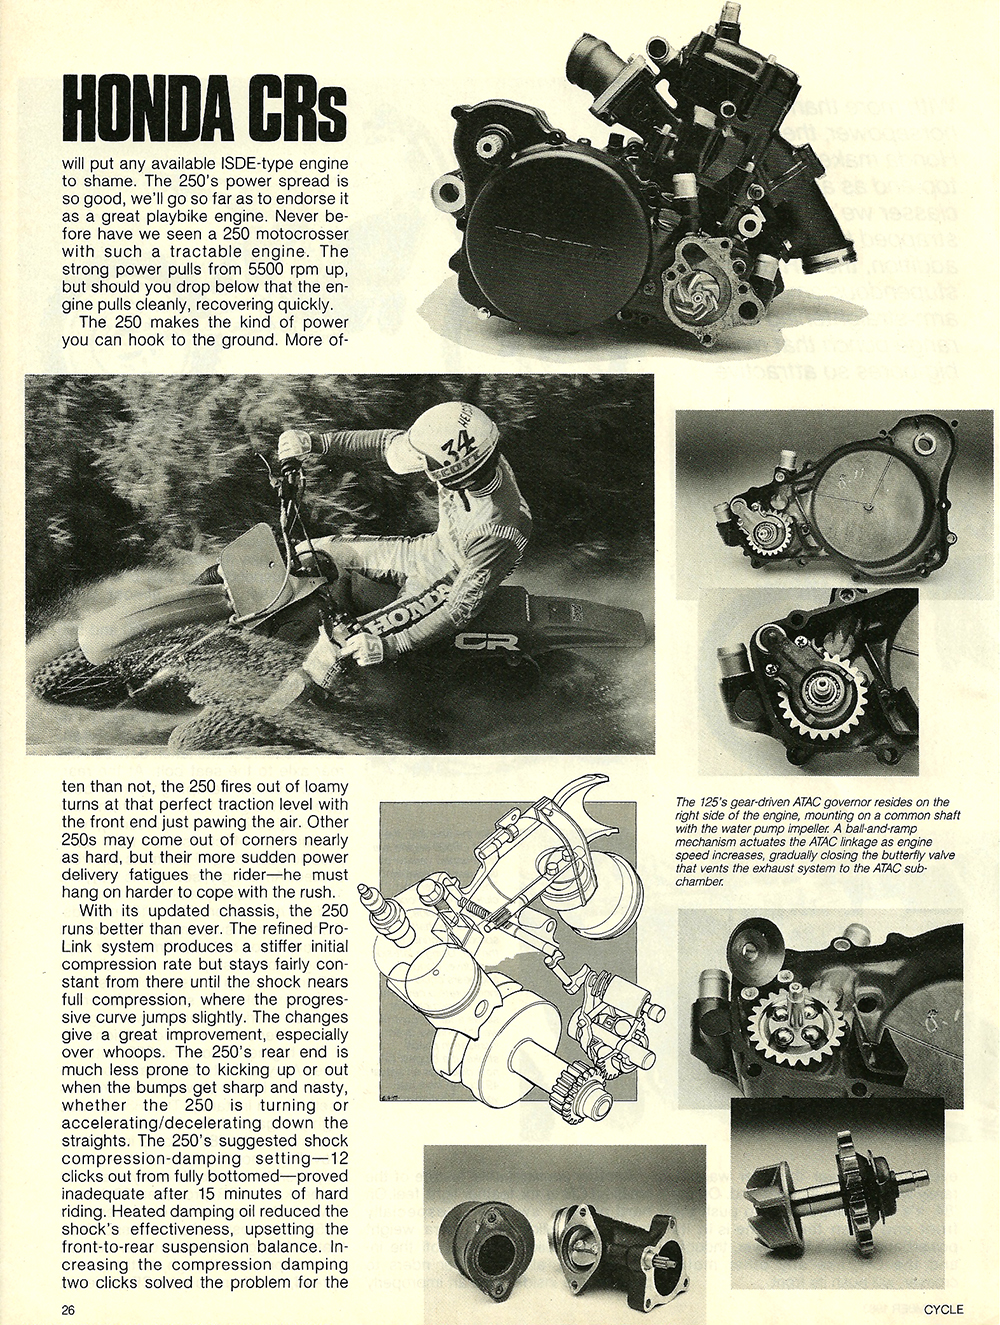 1984 Honda CR 125 250 500 road test 09.jpg